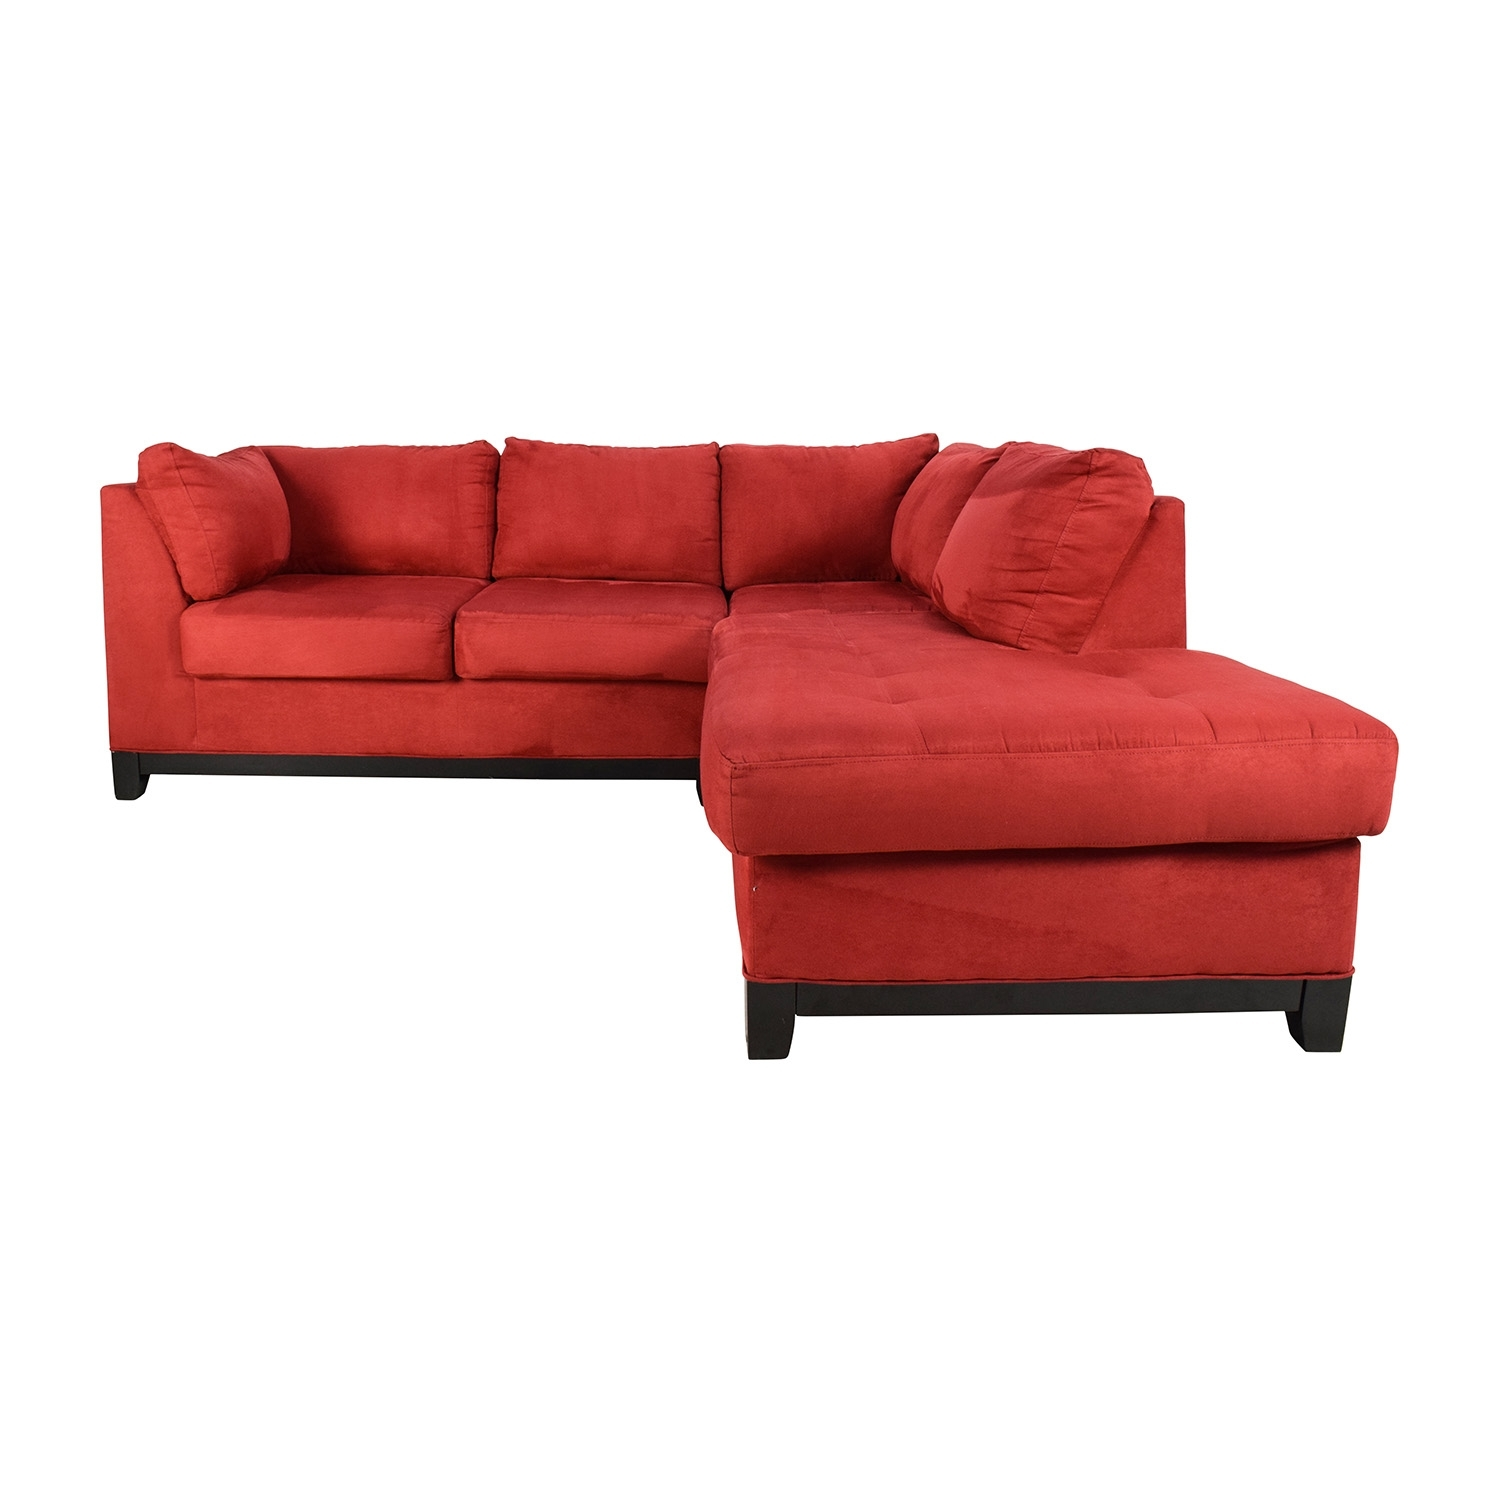 67% Off – Raymour And Flanigan Raymour & Flanigan Zella Red Intended For Raymour And Flanigan Sectional Sofas (Photo 3 of 10)